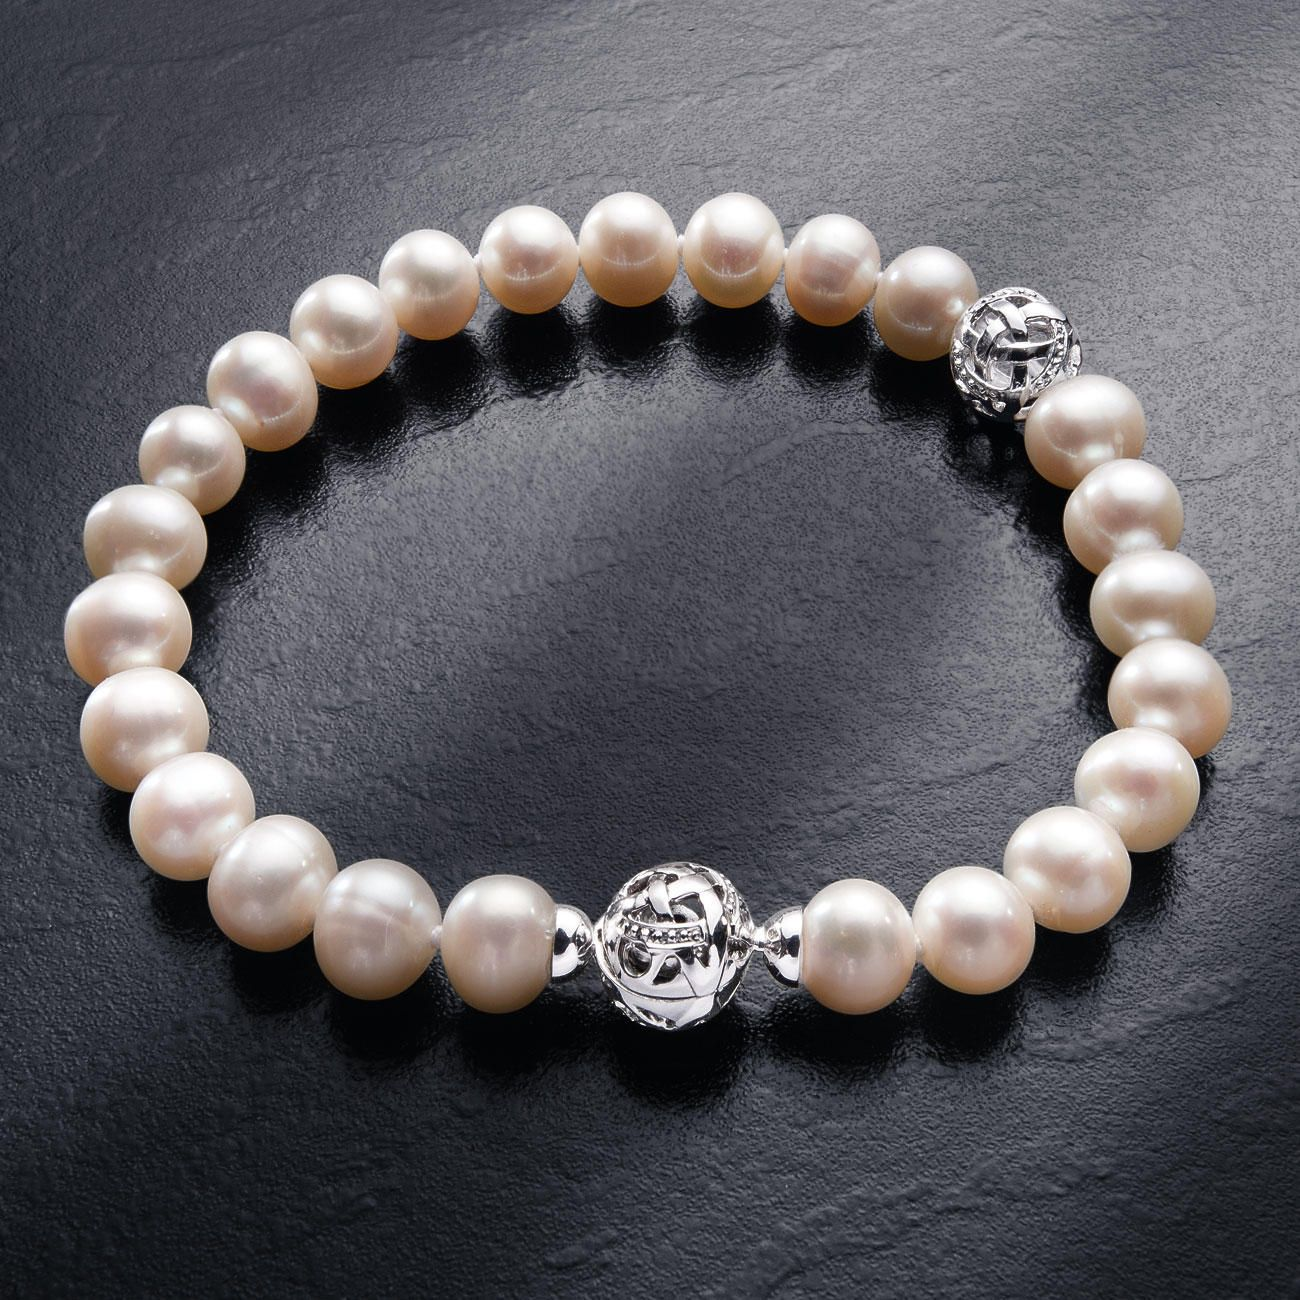 Awesome 15 Pearl Bracelet Design Samples You Will Love